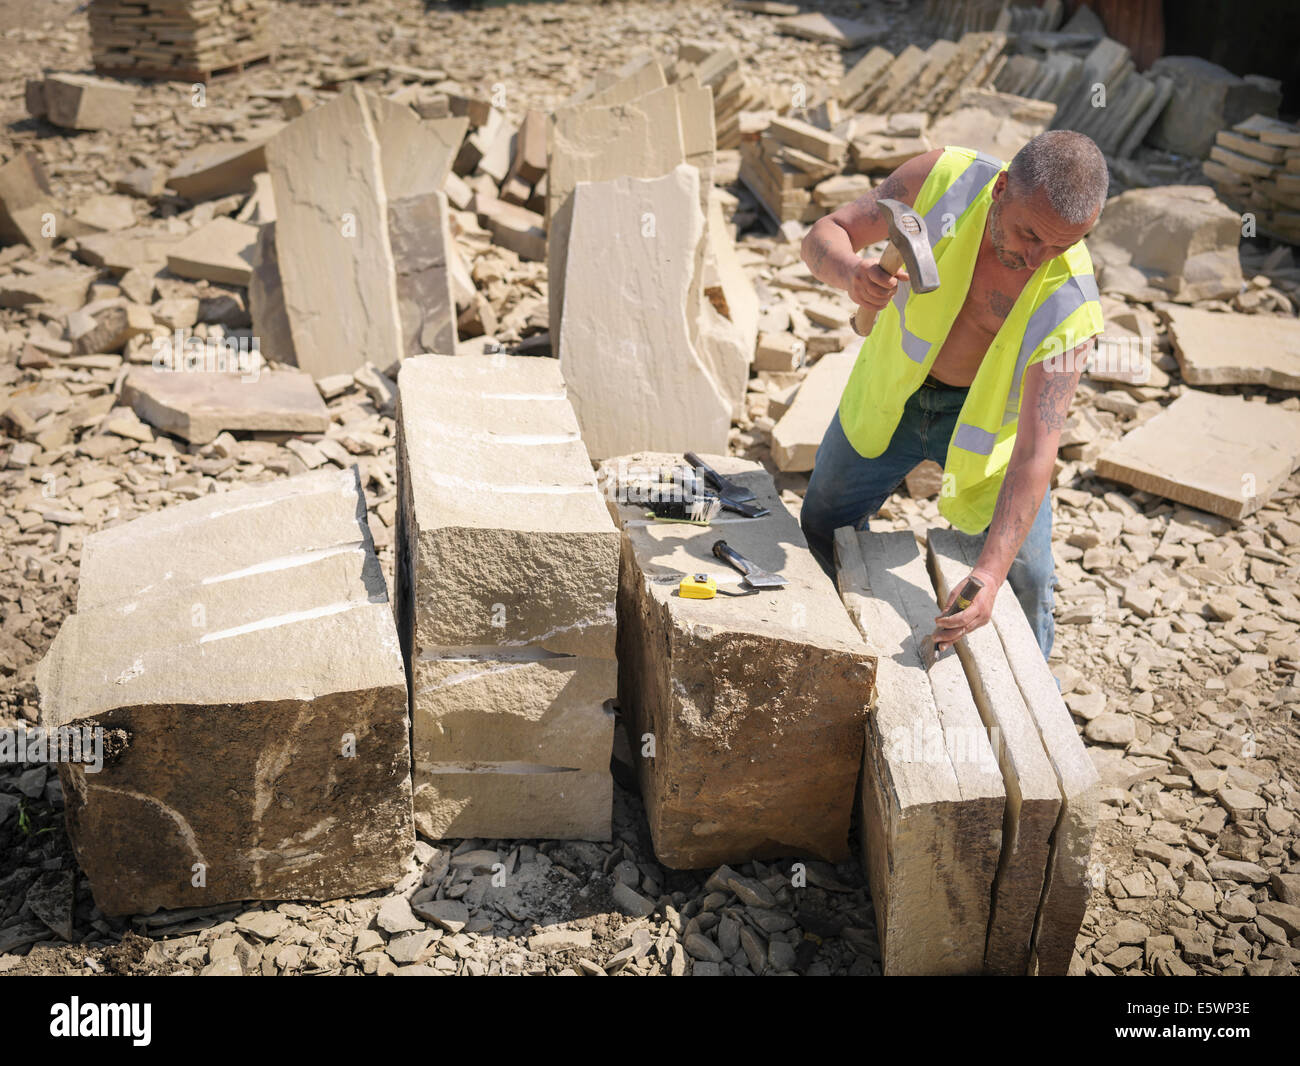 Quarry worker splitting sandstone in Yorkshire stone quarry, elevated view - Stock Image